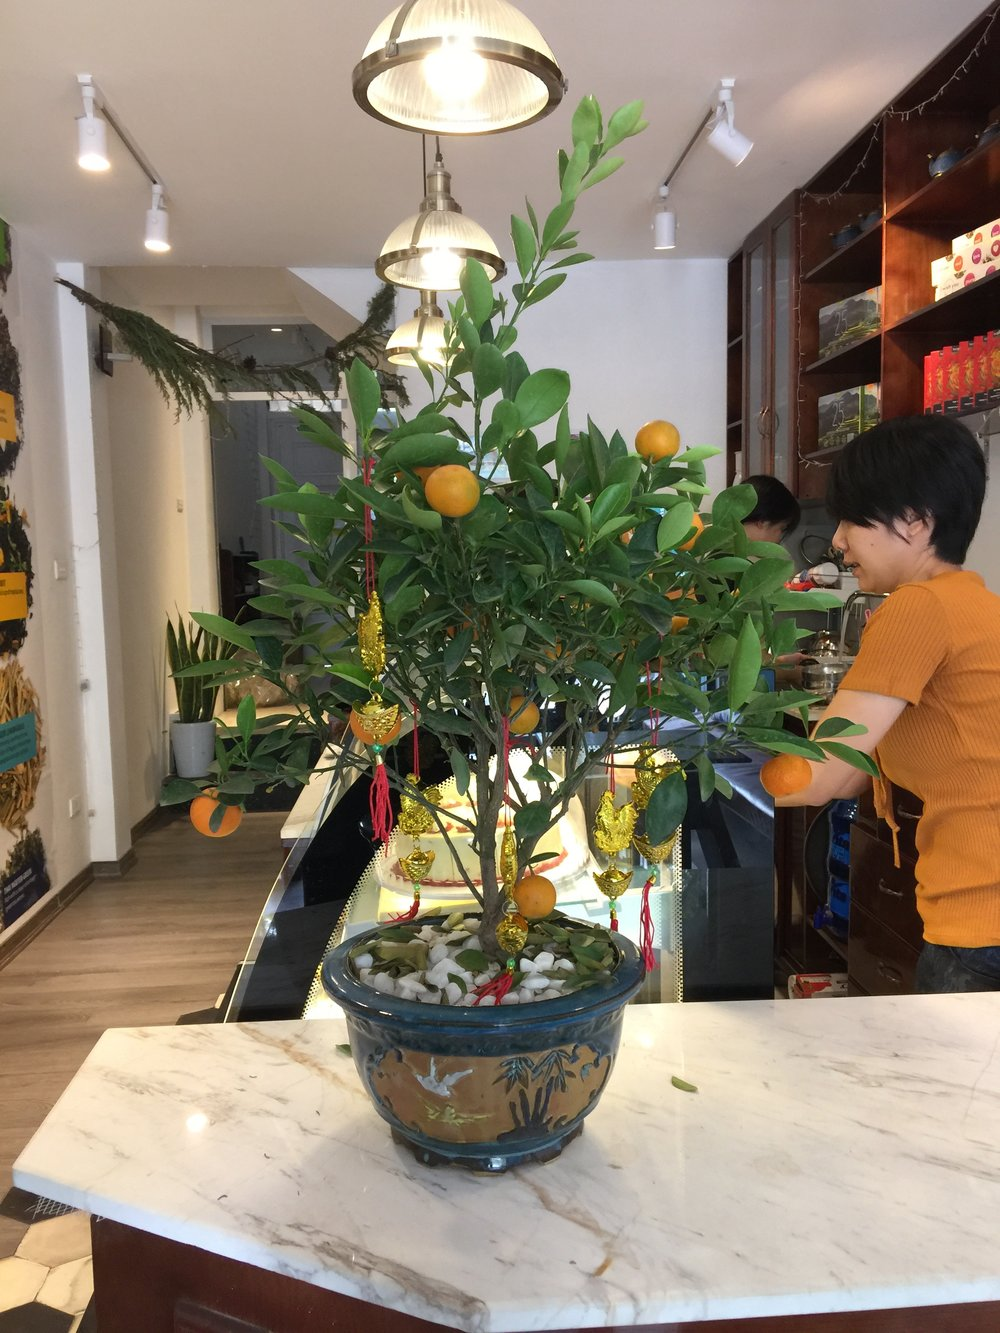 A small kumquat tree laden with fruit in a cafe in Hanoi, Vietnam.